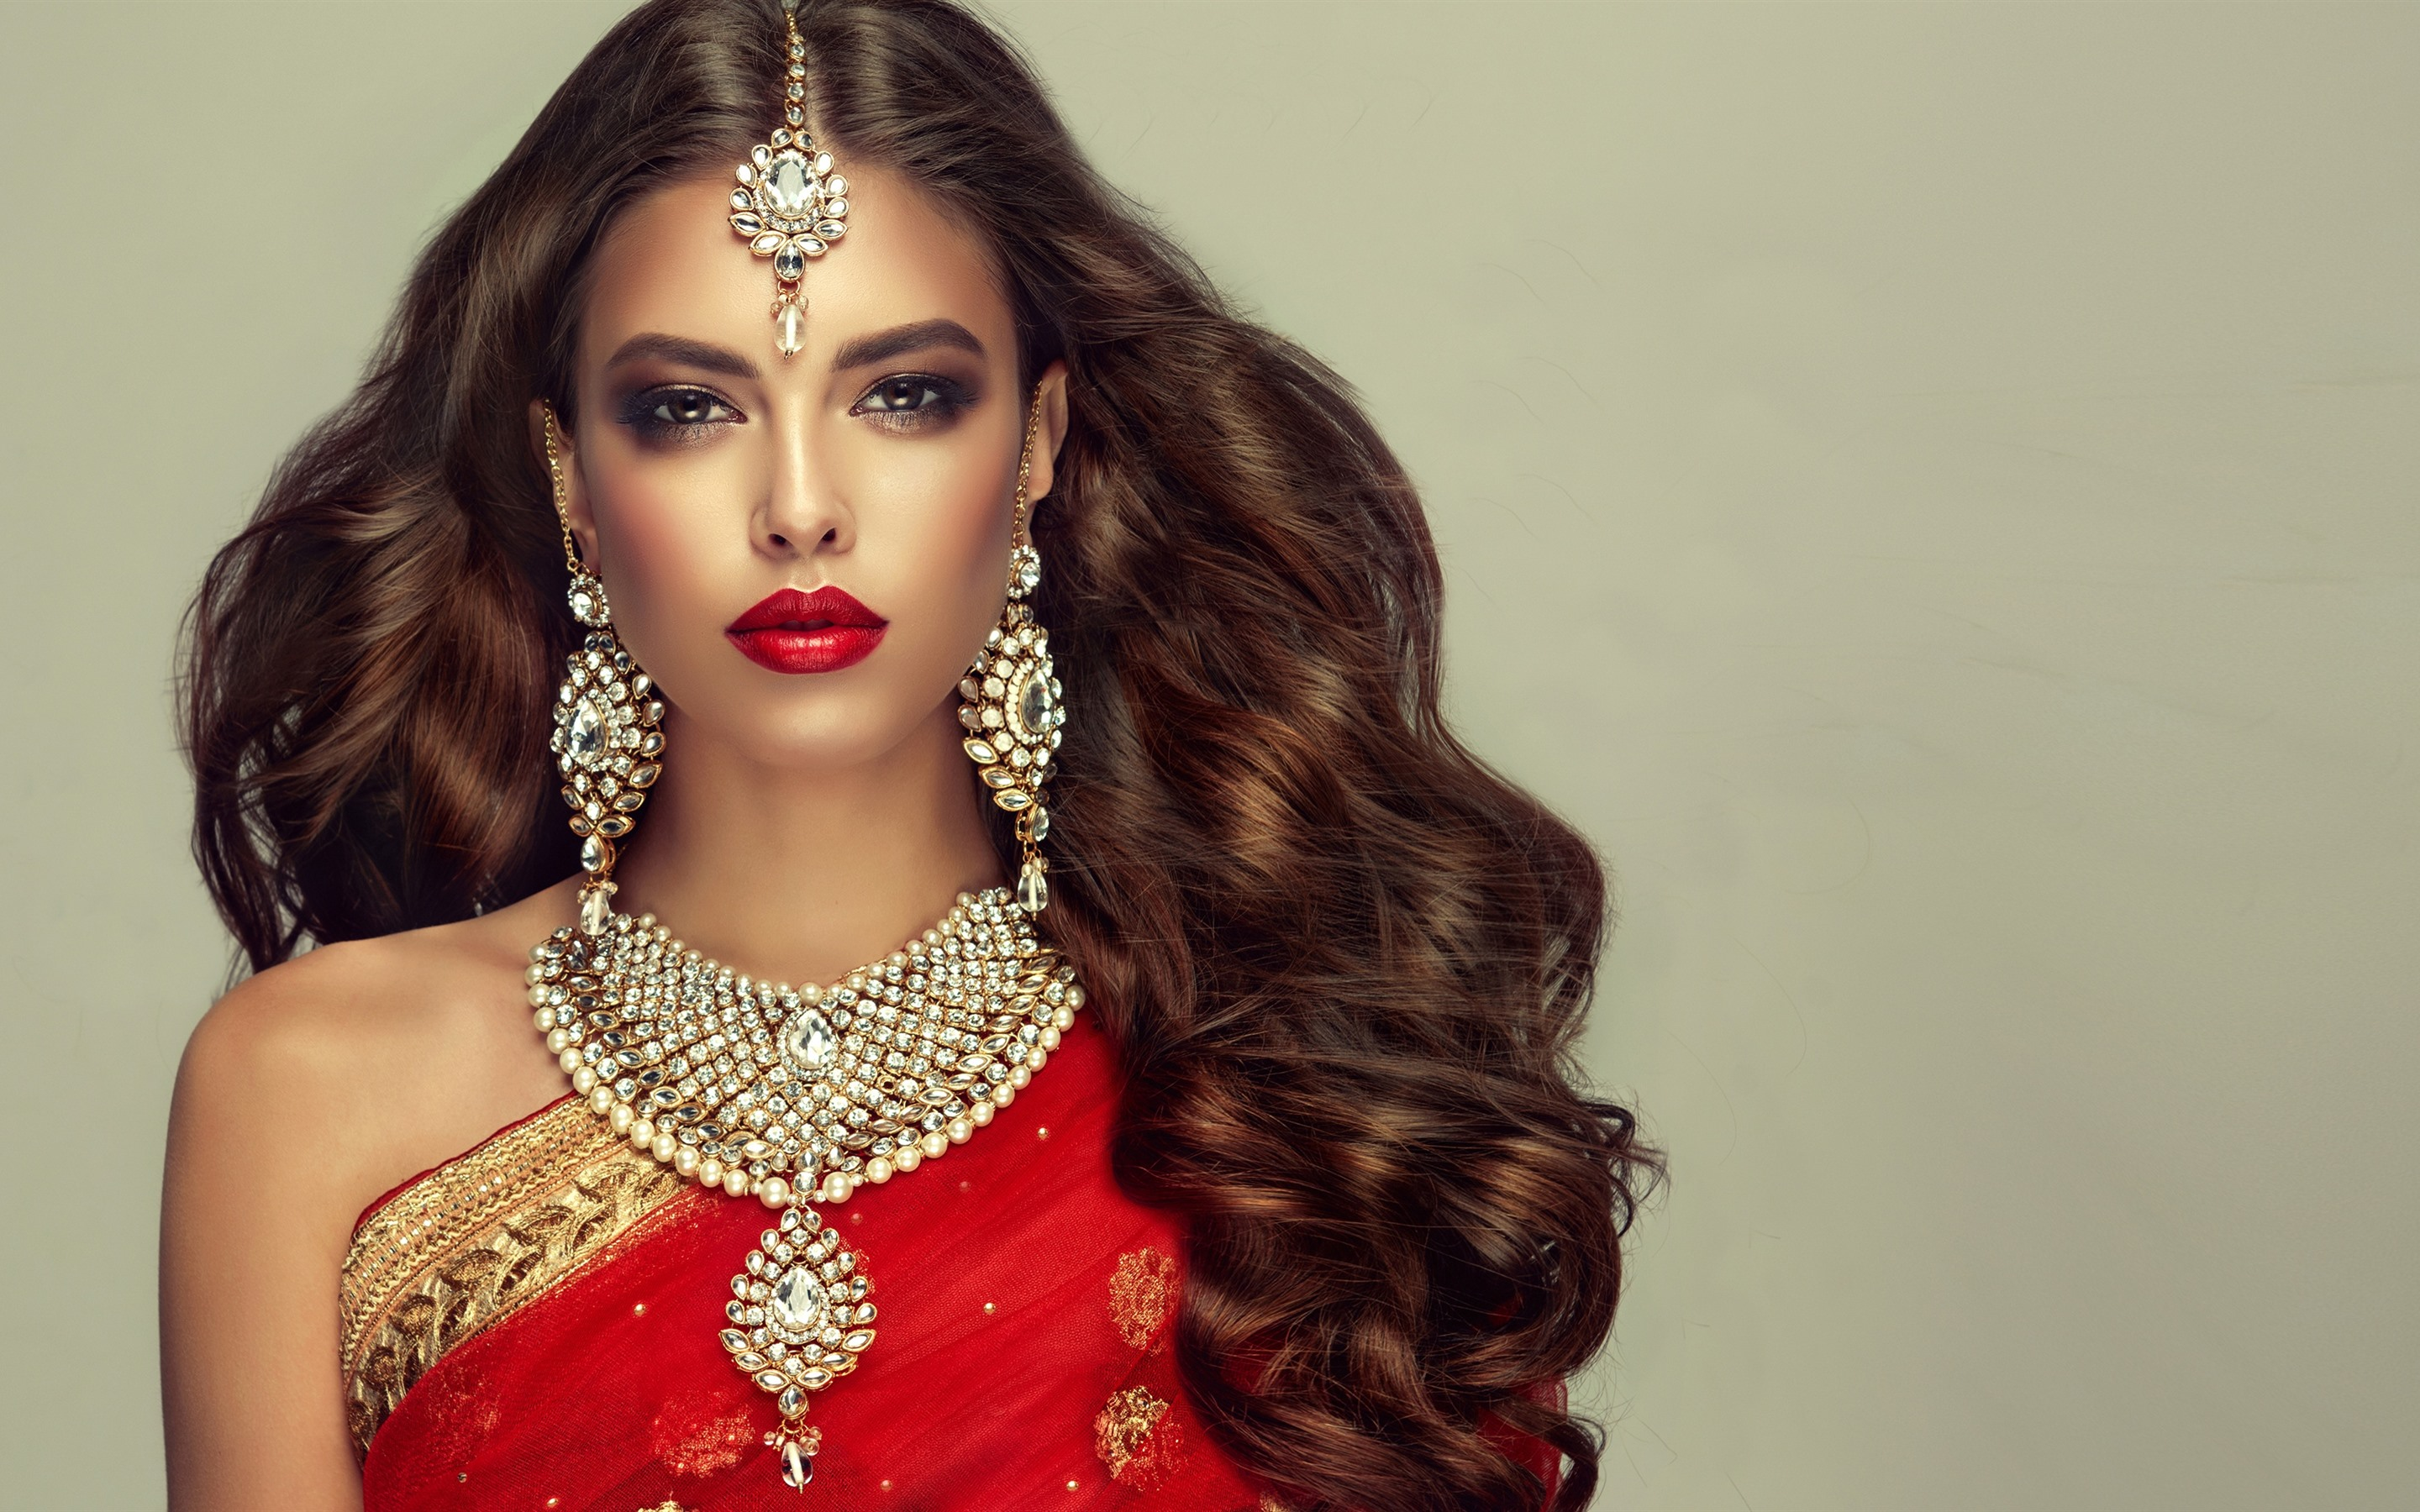 dd2534f719 Wallpaper Indian girl, fashion, hairstyle, necklace, earring ...